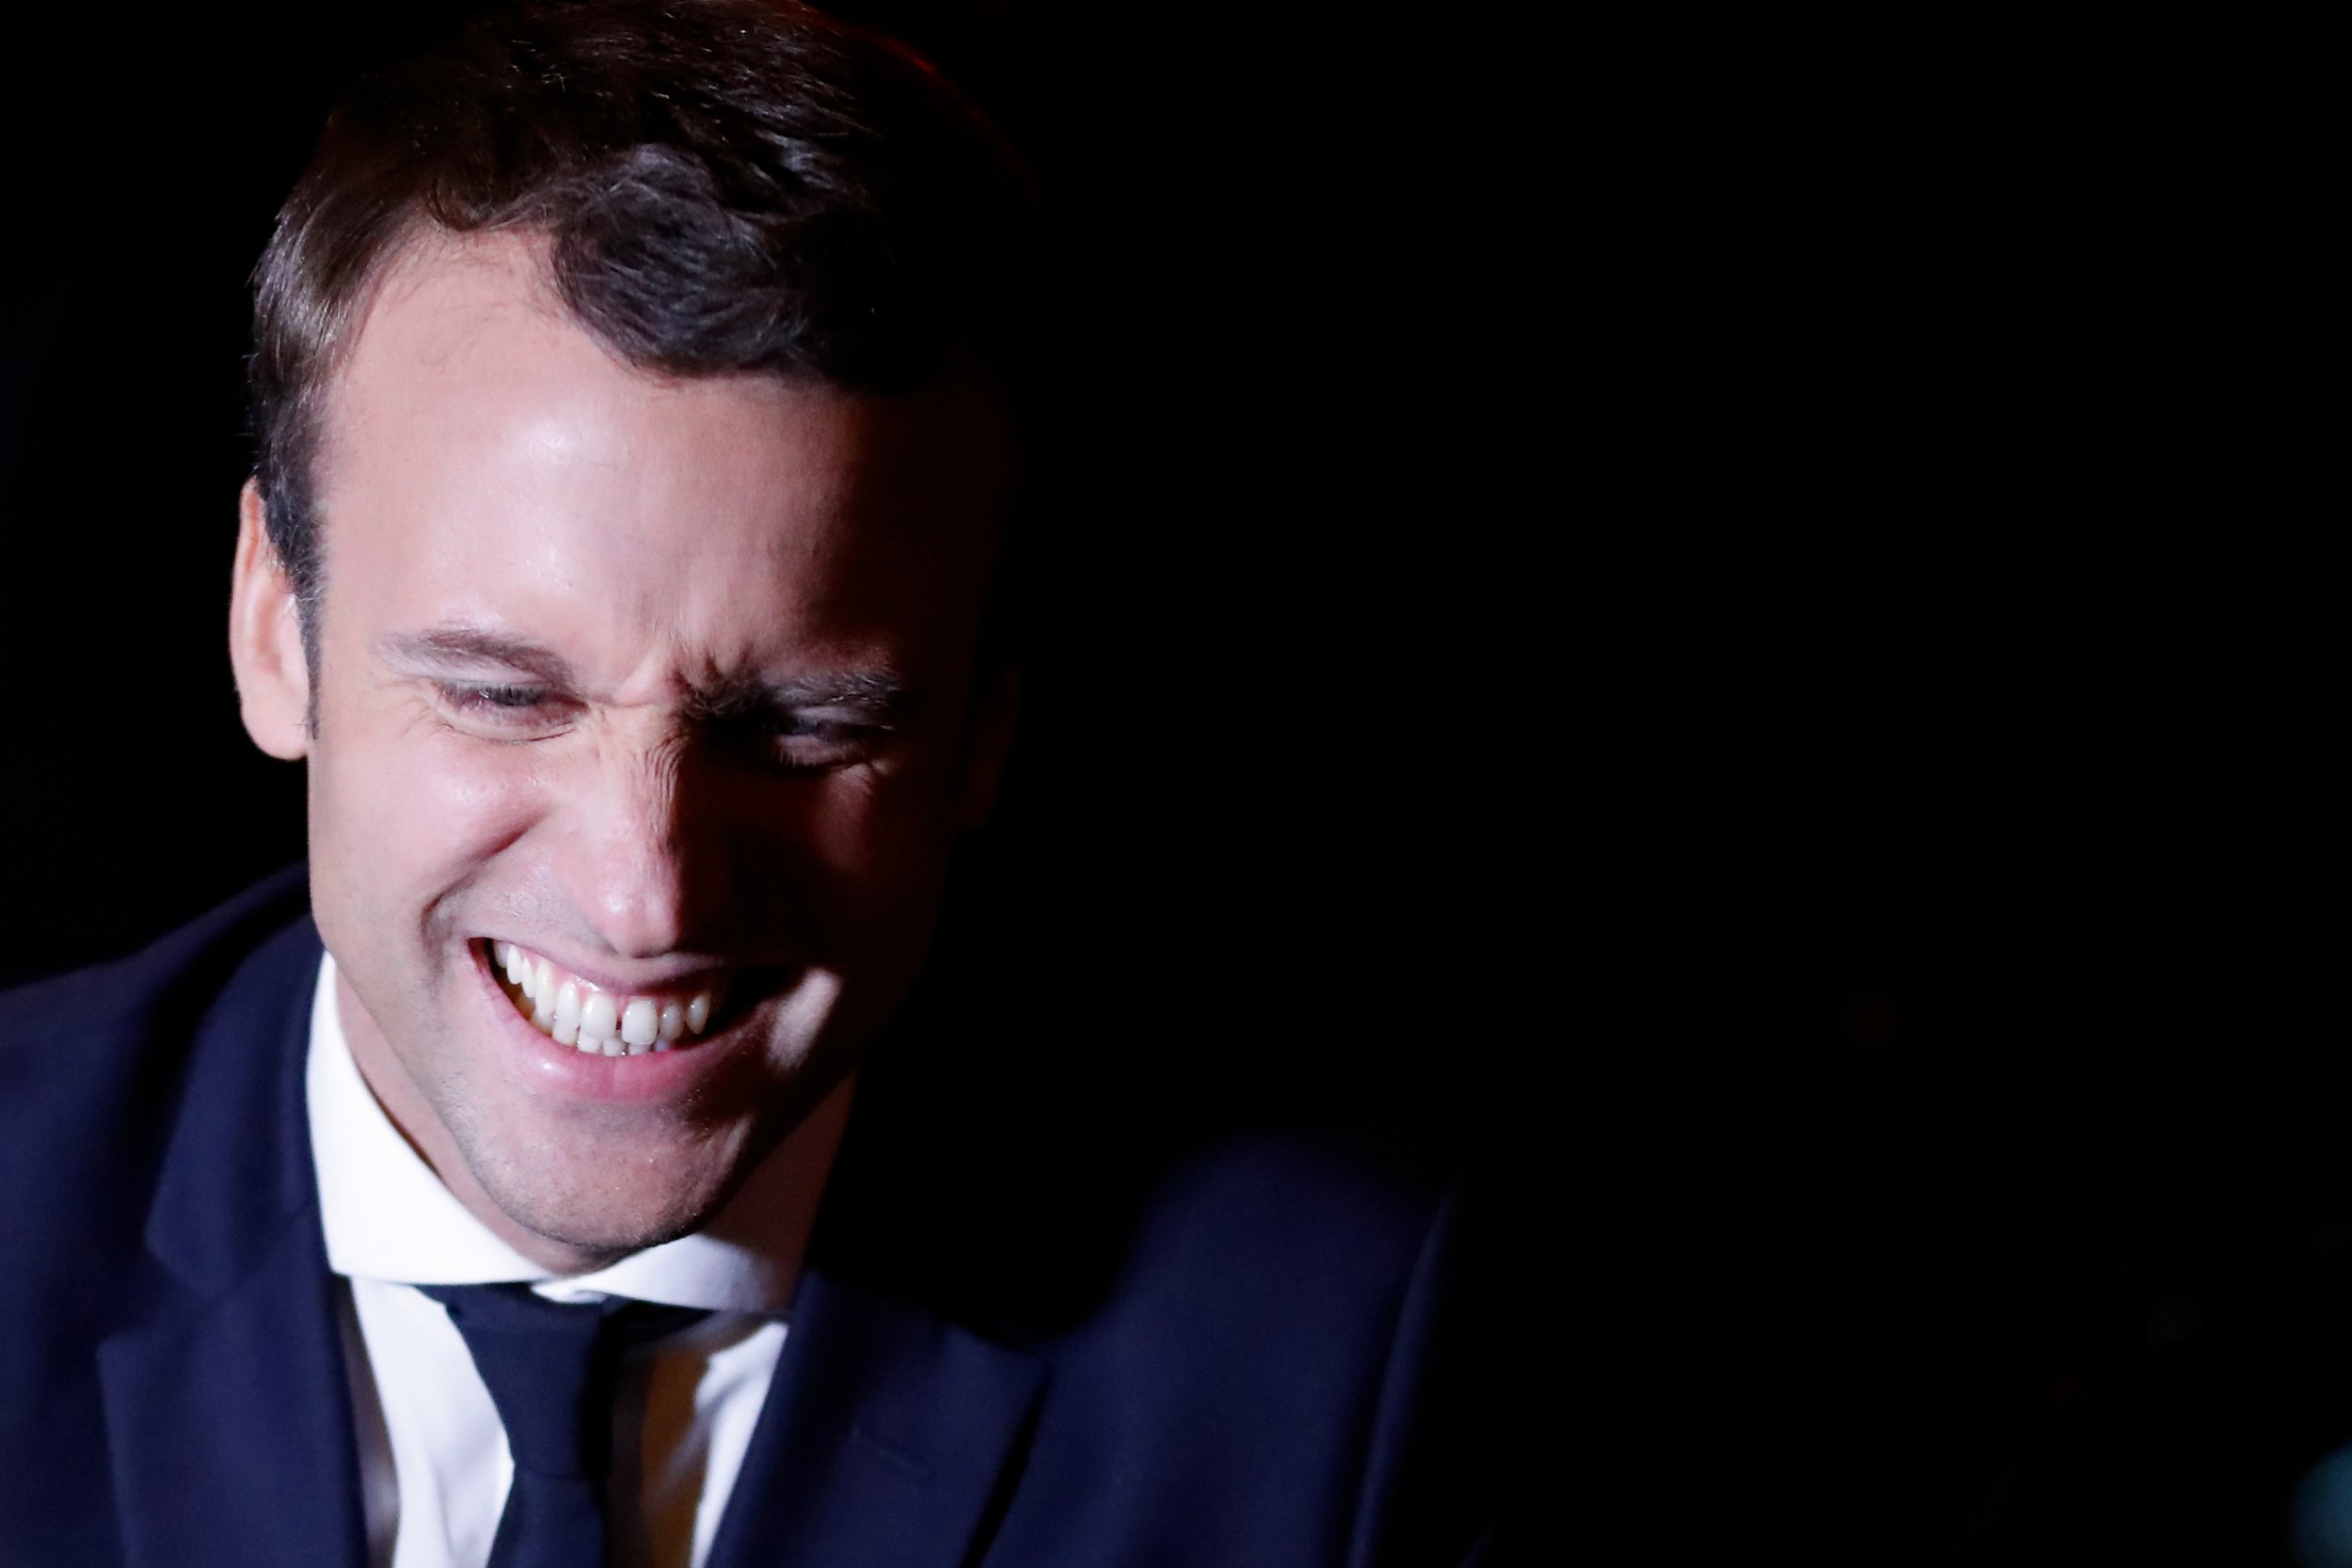 04_25_French_Election_01